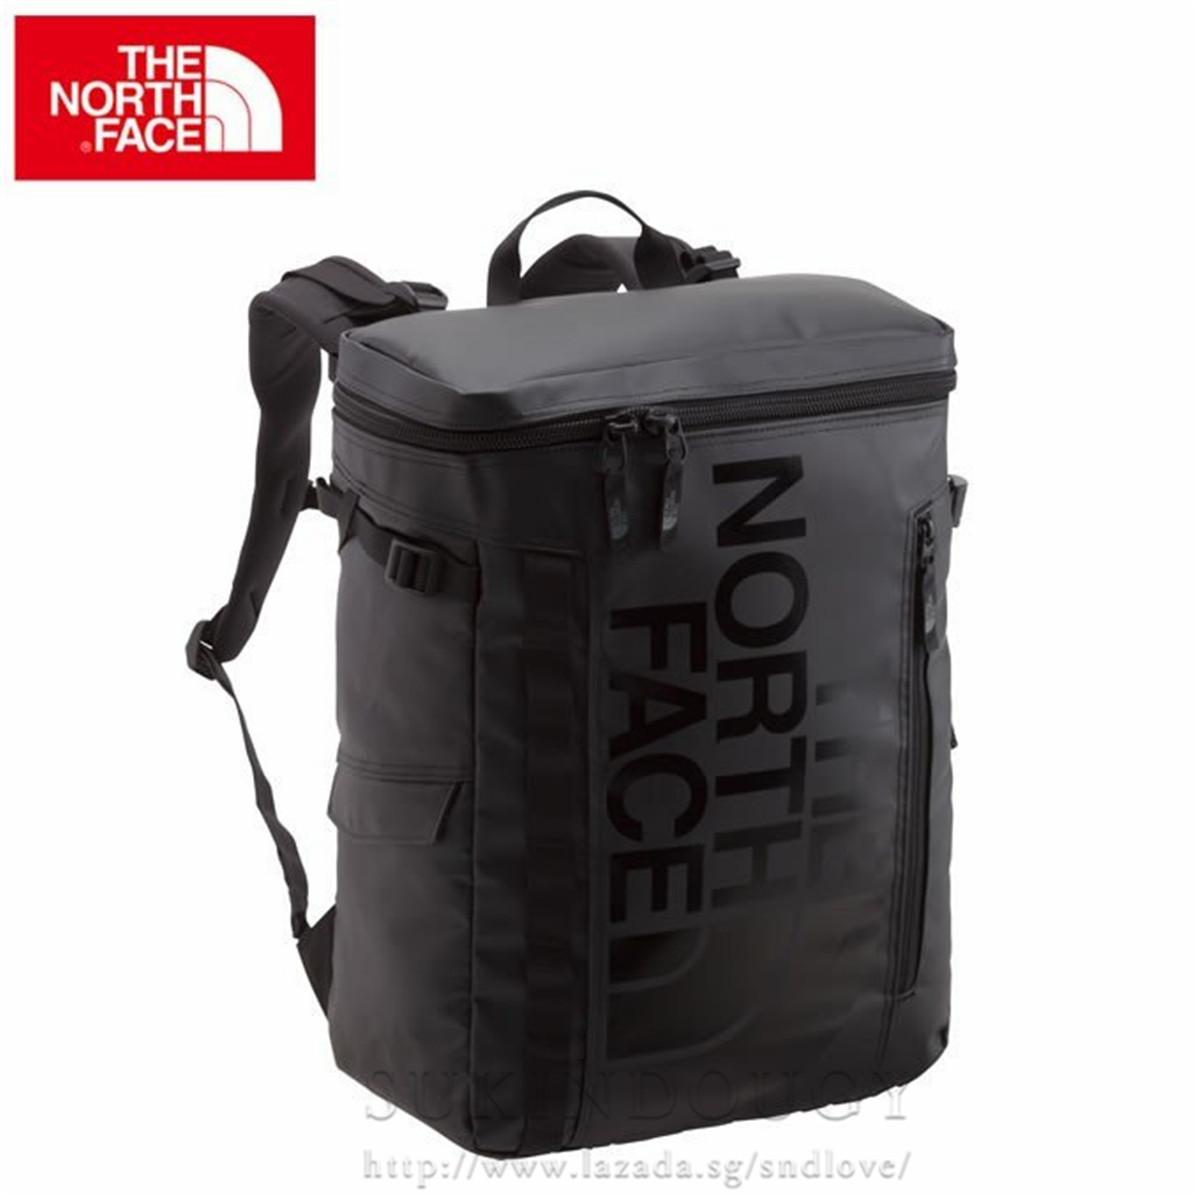 066bc4ec6 The North Face,National Geographic - Buy The North Face,National ...